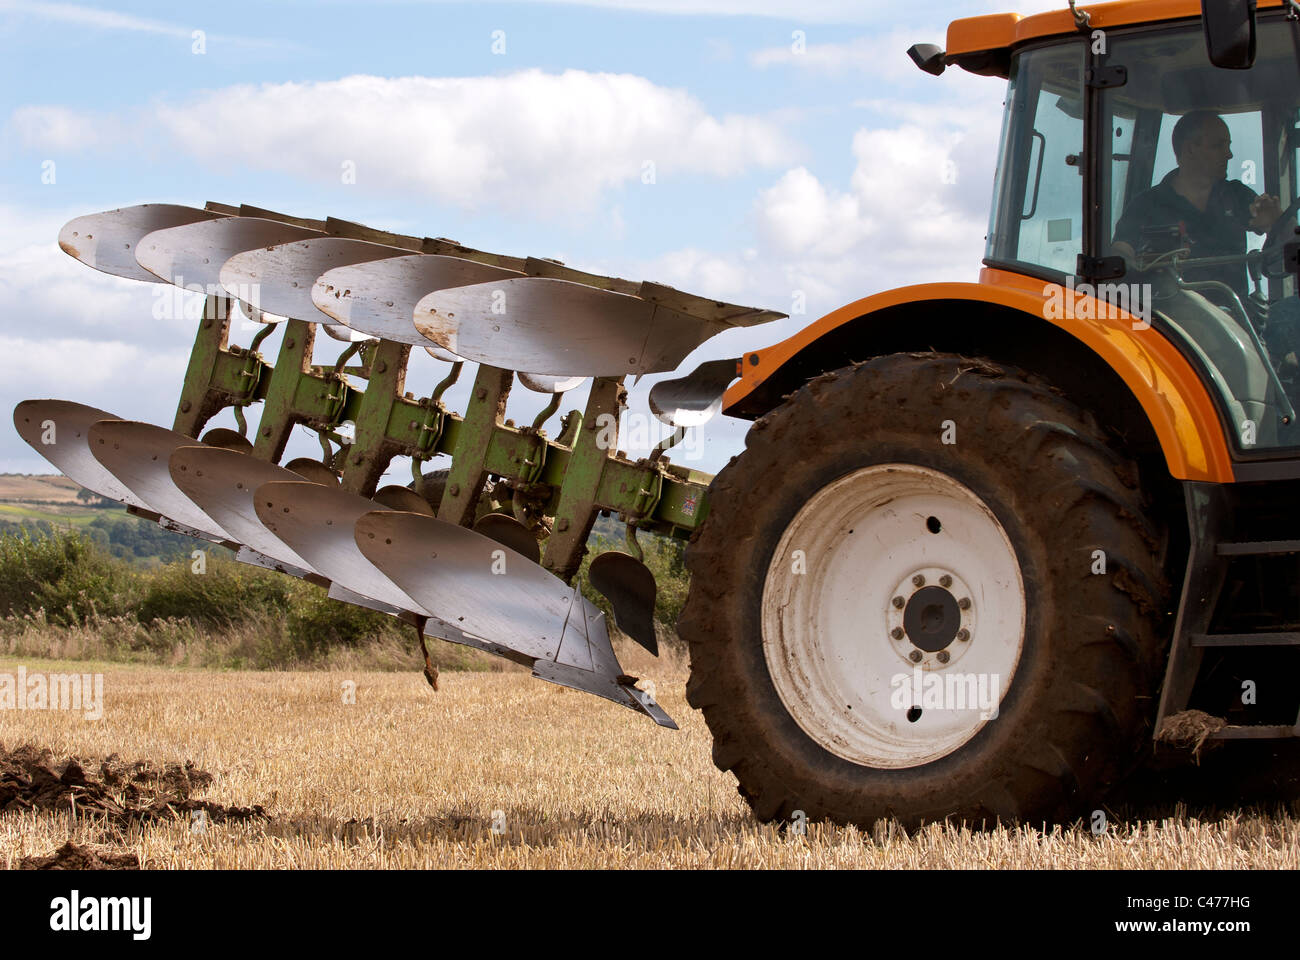 Dowdeswell 5 furrow reversible plough - Stock Image